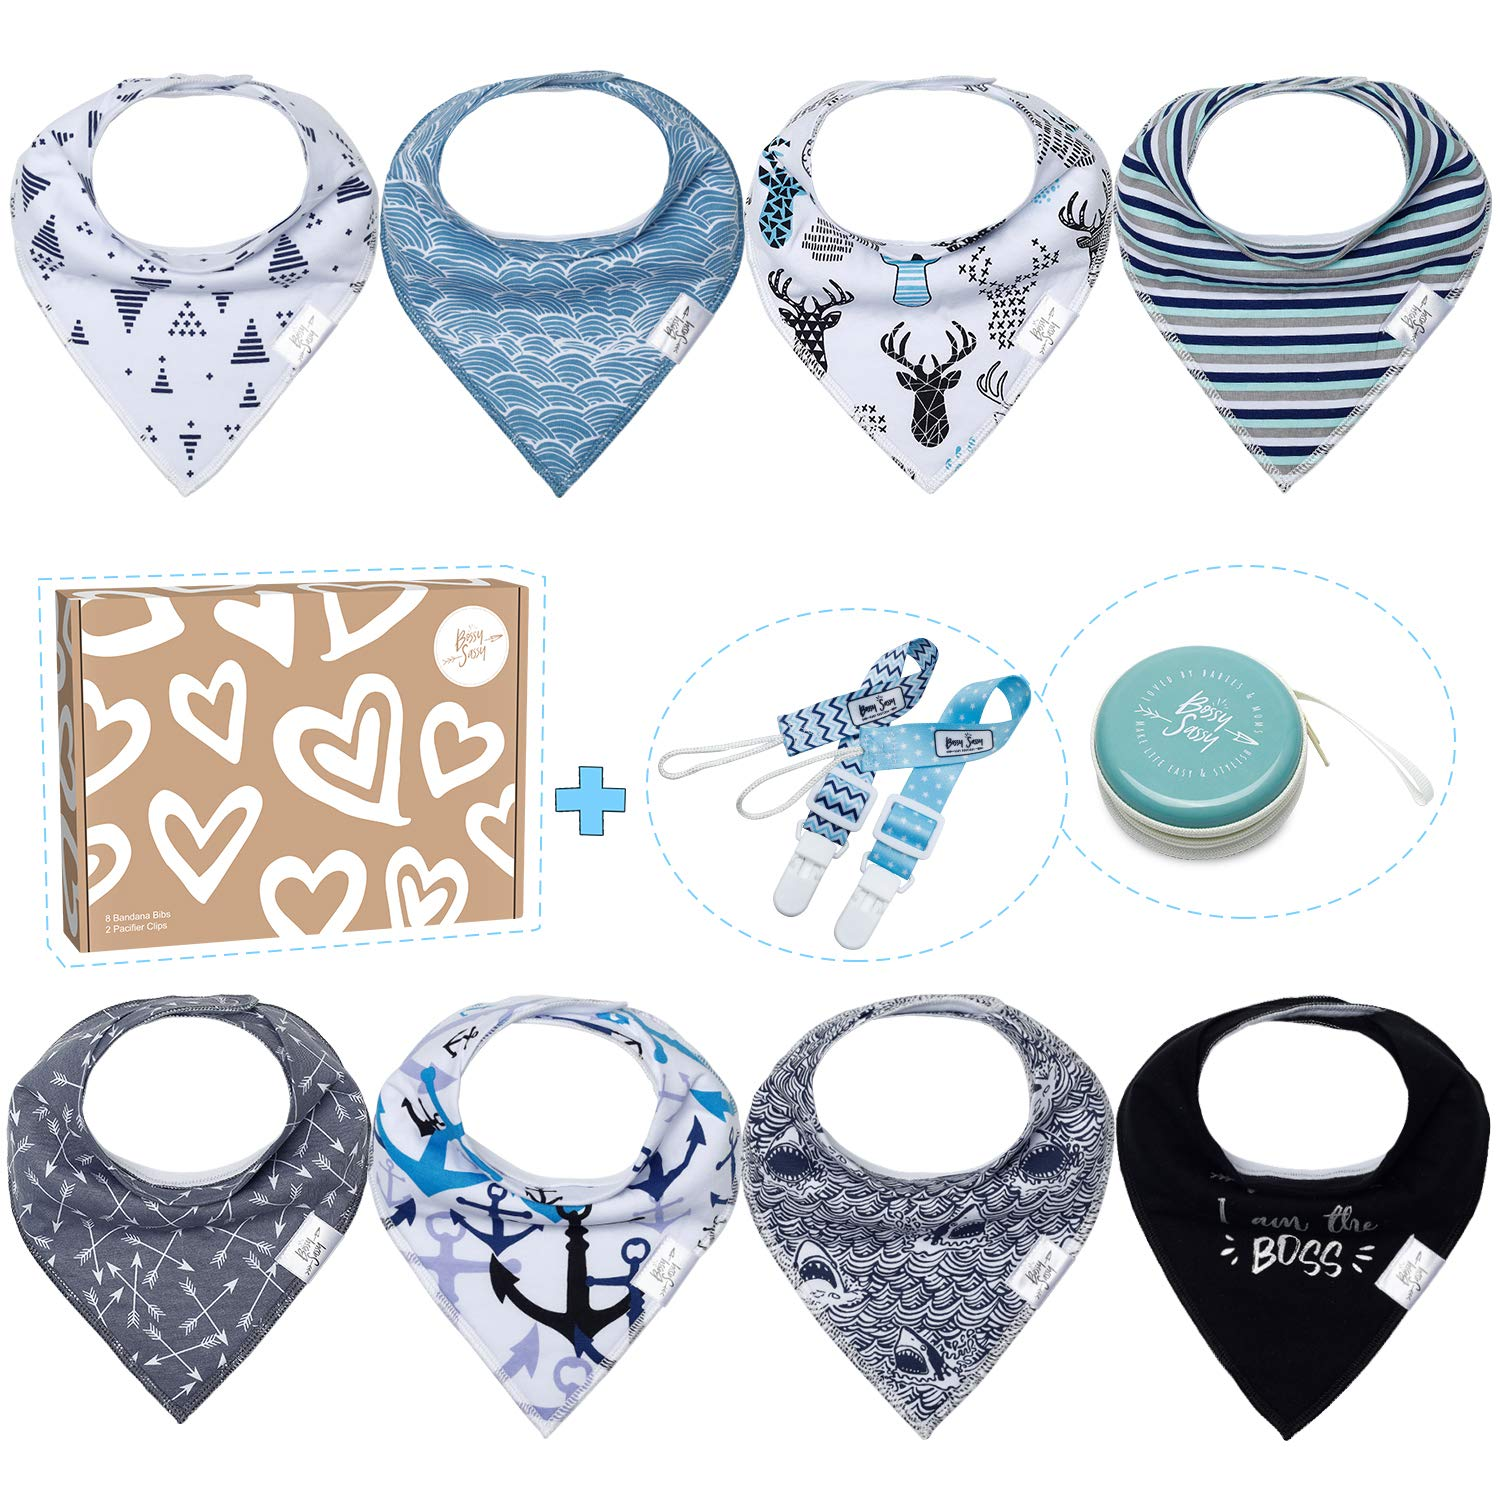 Baby Bandana Drool Bibs for Boys - 8 Pack Teething Baby Bibs + 1 Multifunctional Case, Best Baby Shower/Registry Gift Set for Boys by Bossy Sassy